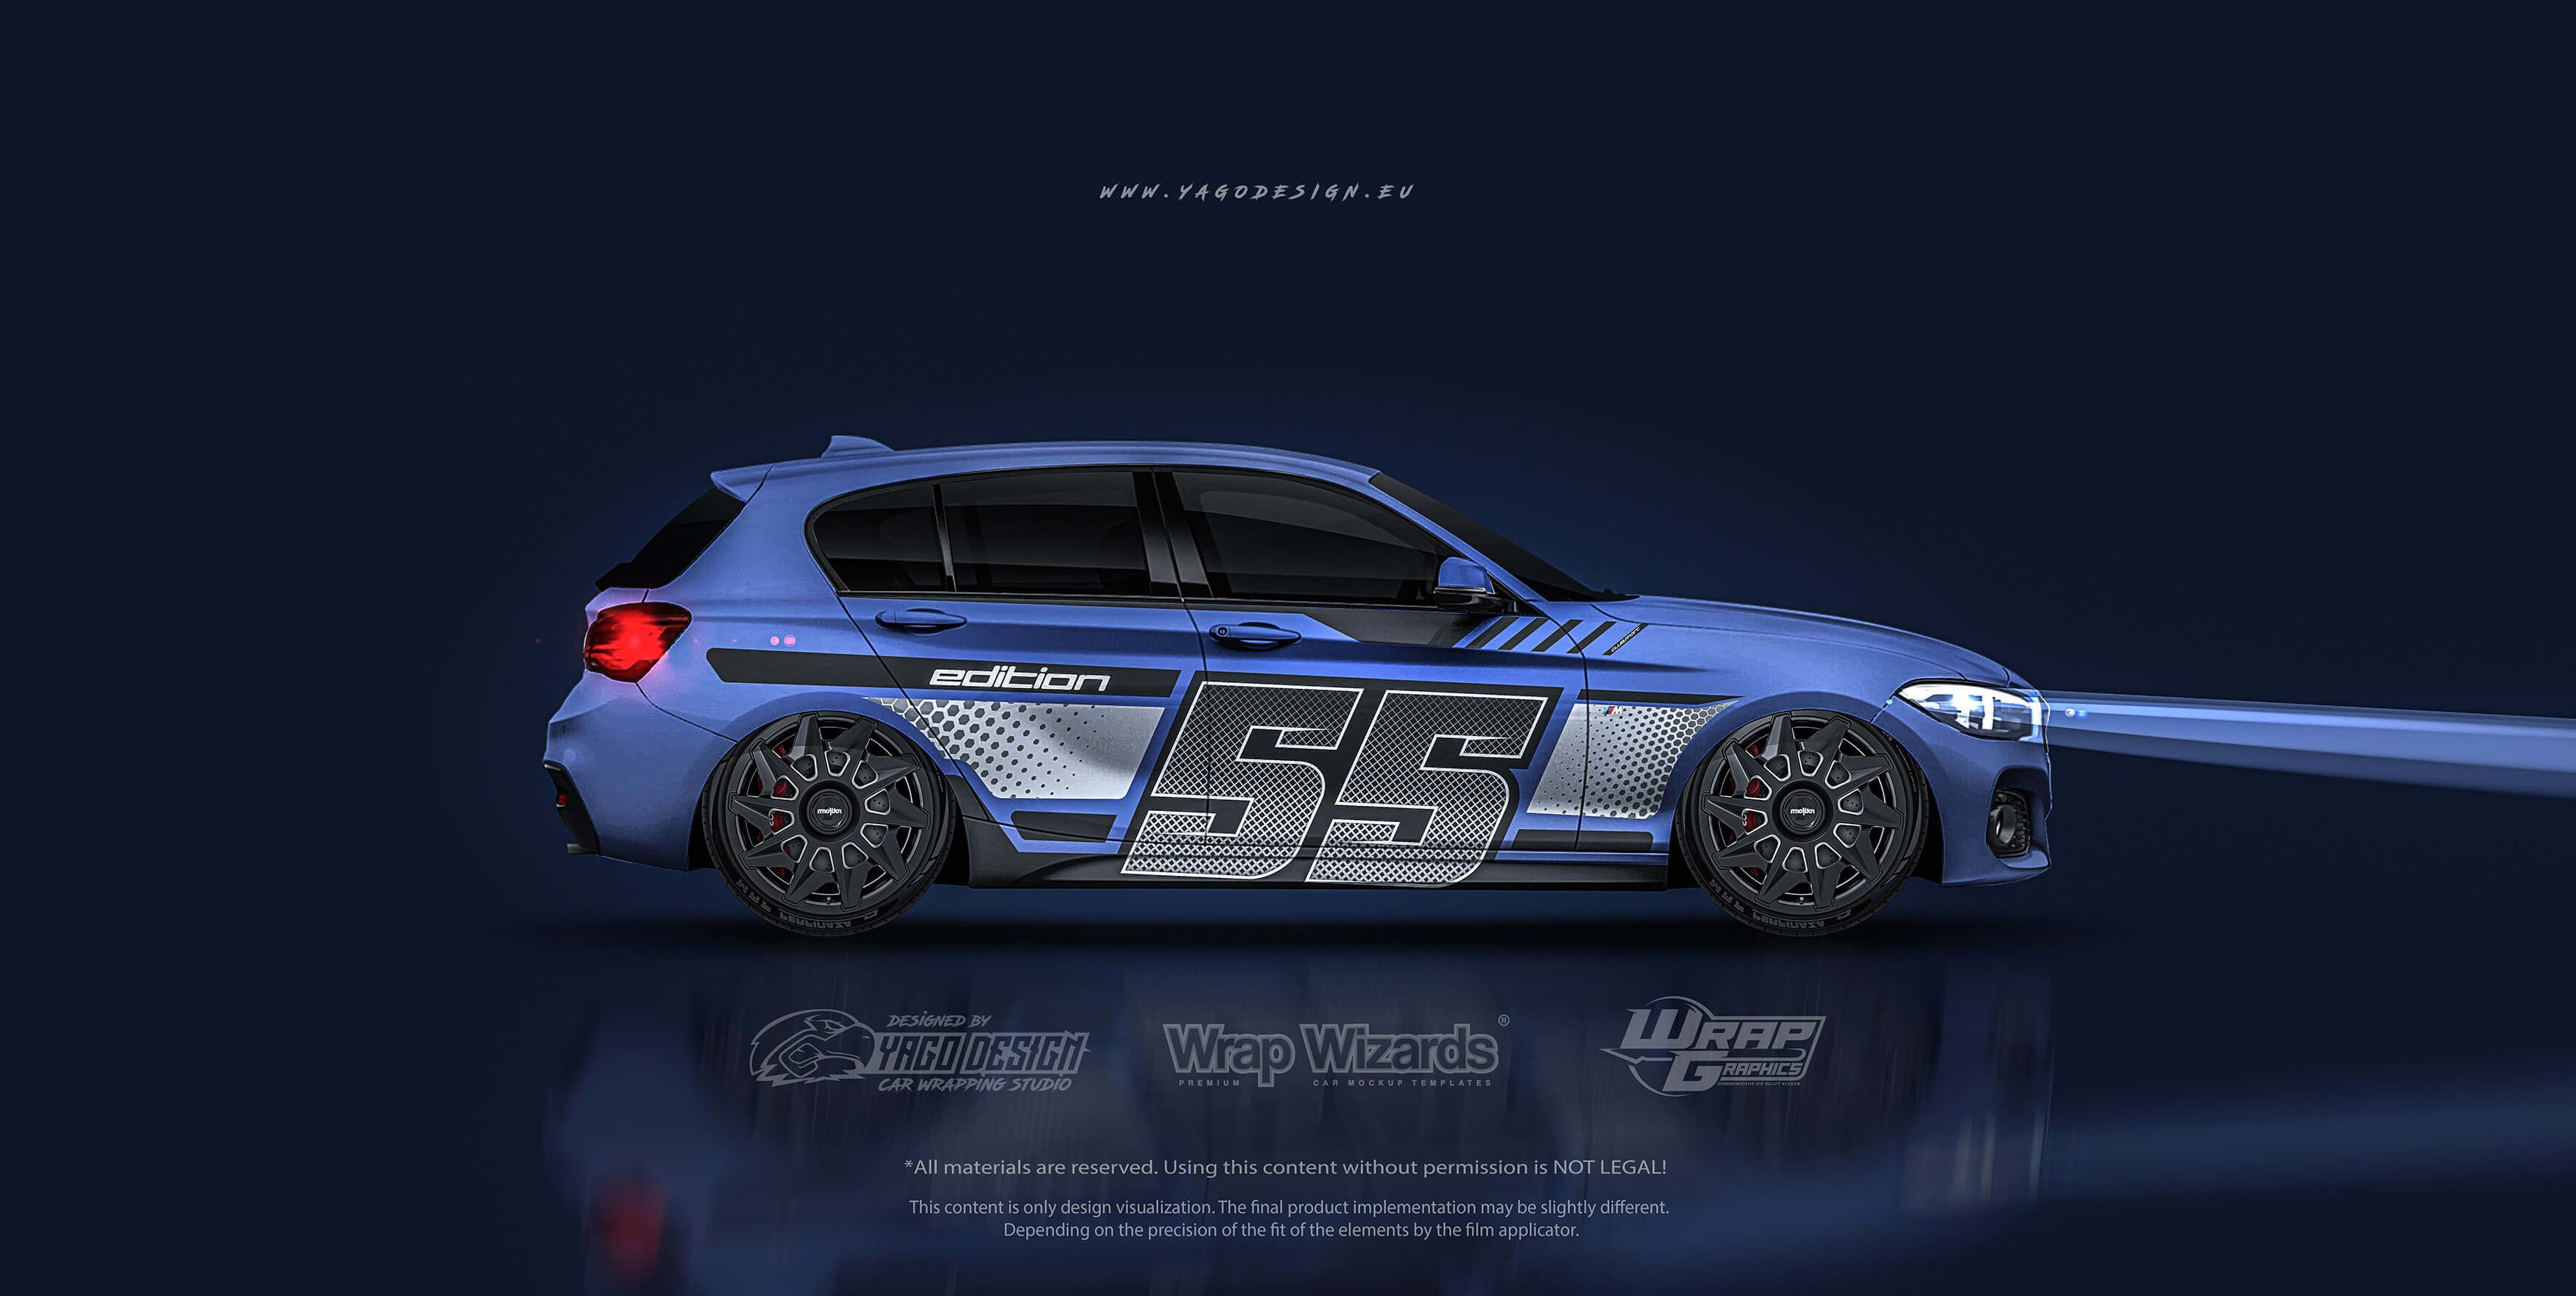 S Bmw F20 1 Series Numbered S Yago Design